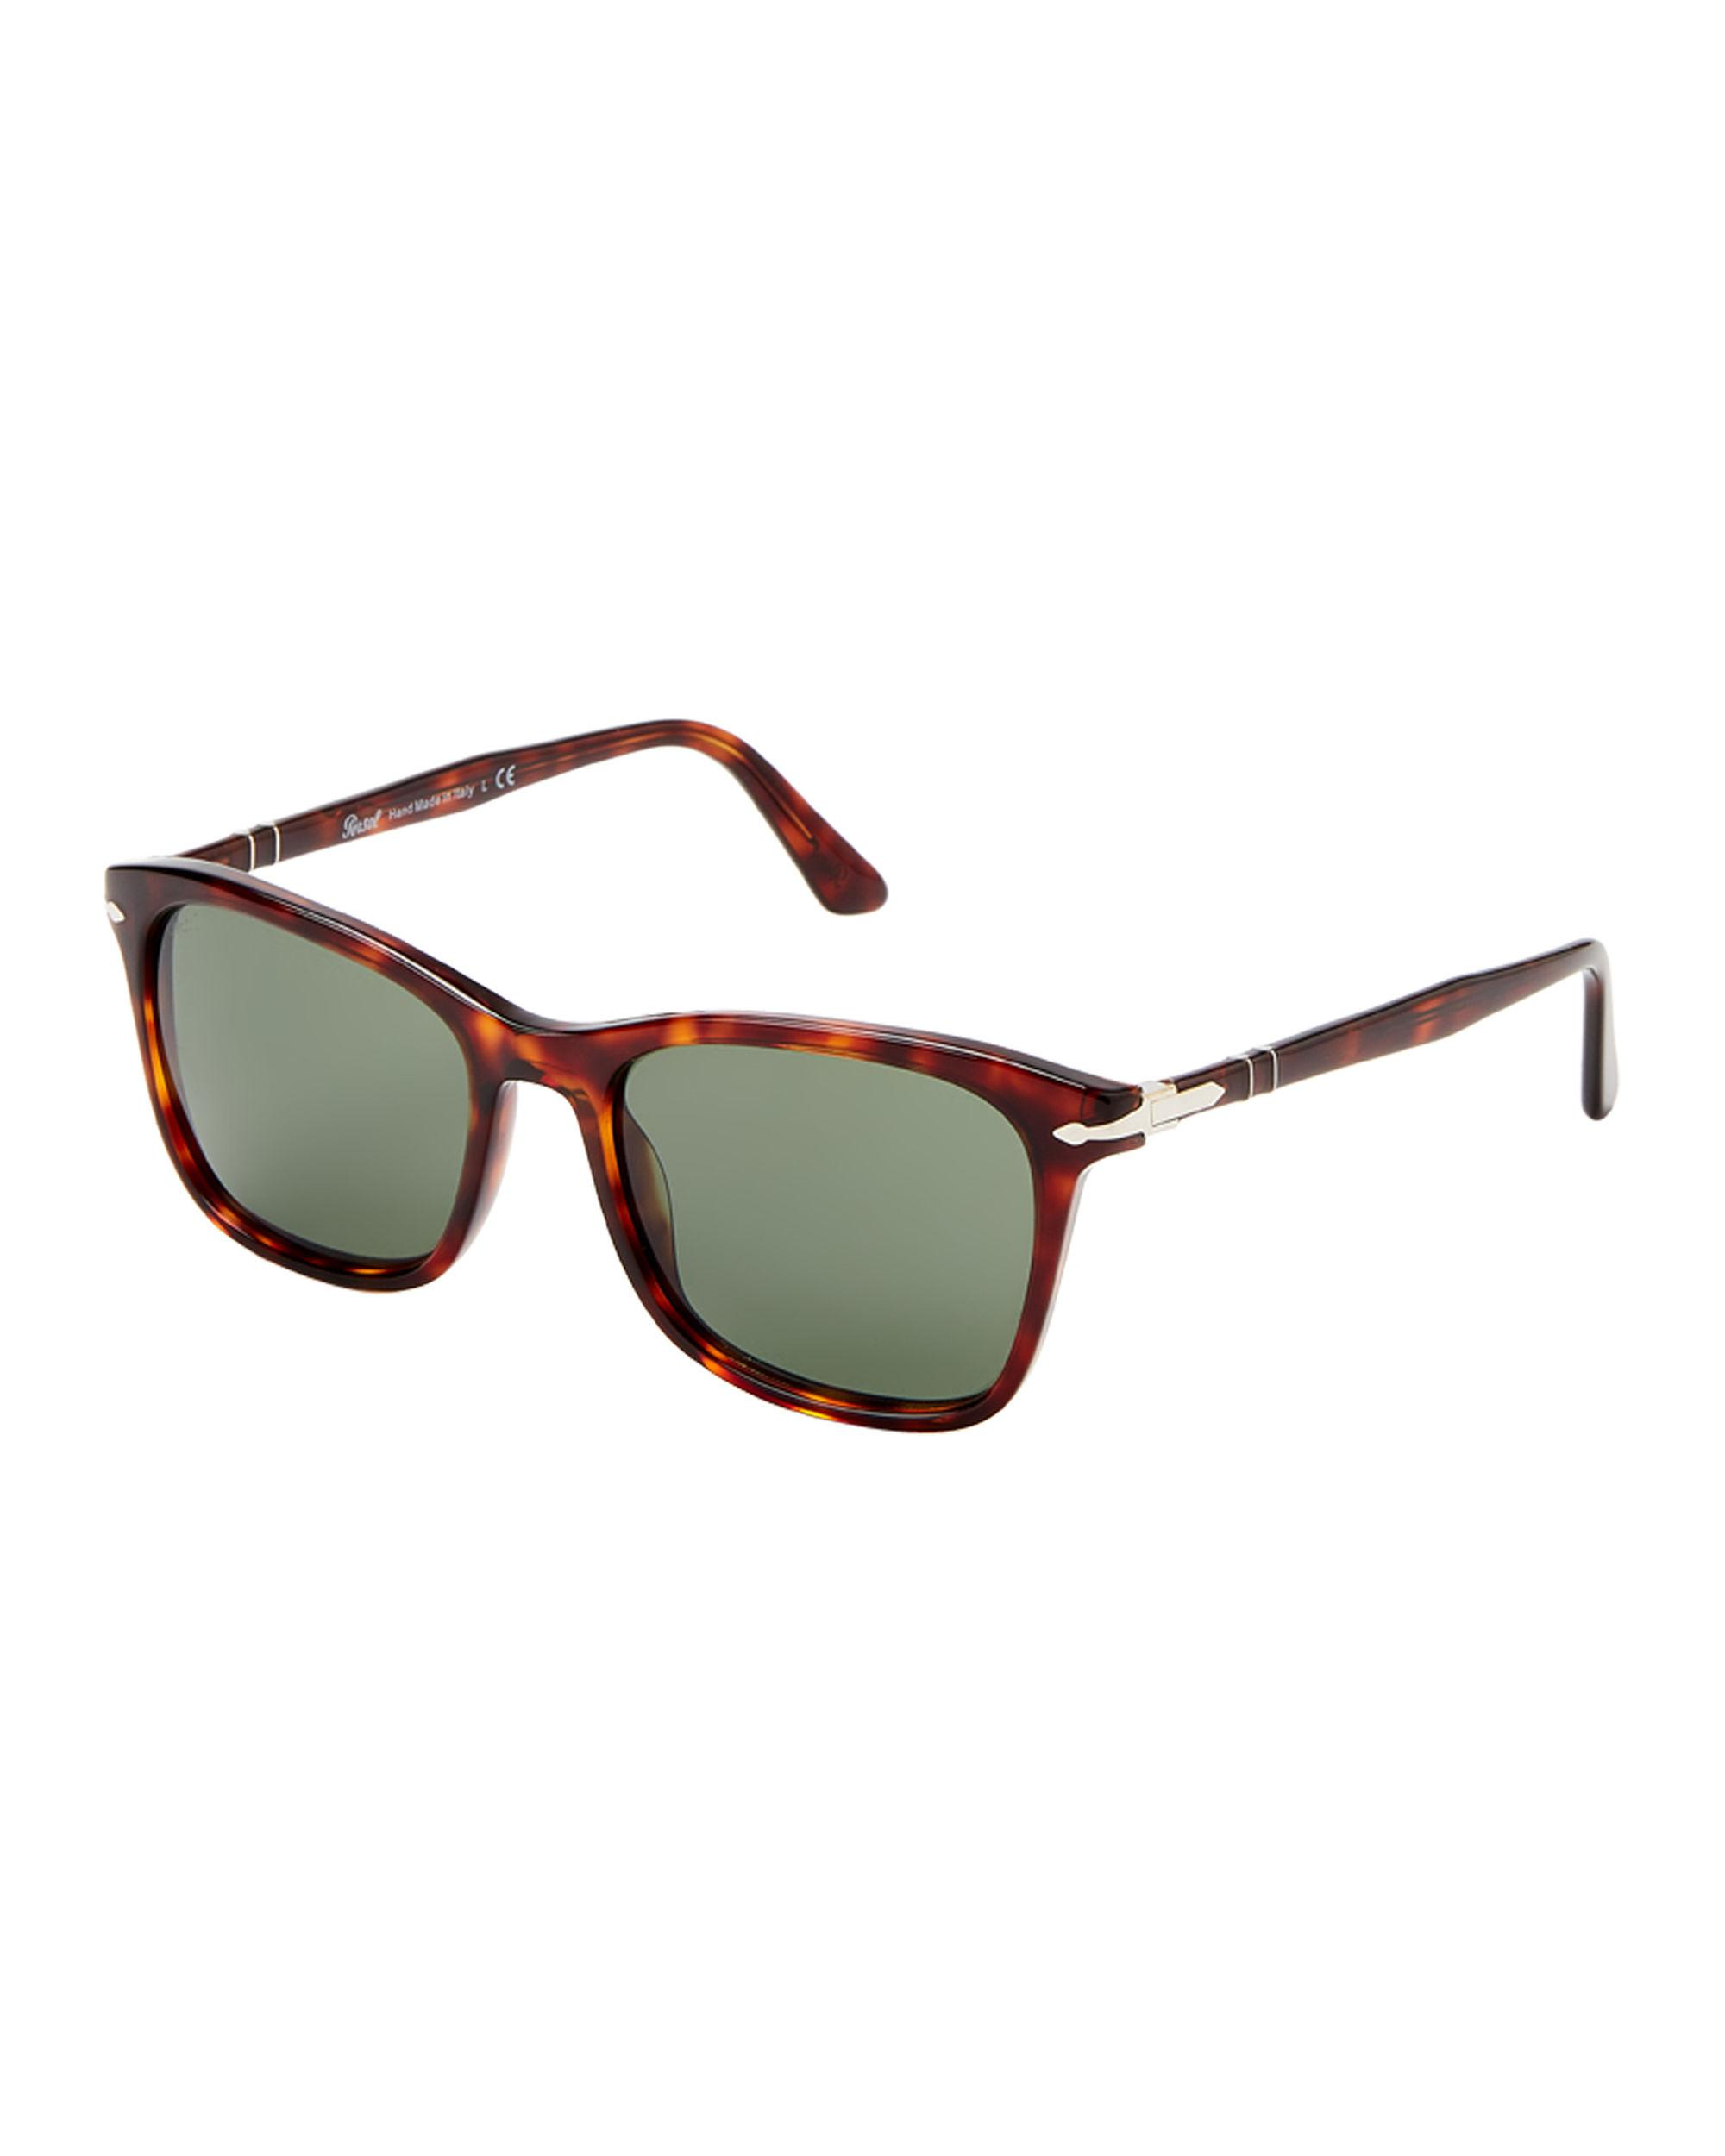 80f66f7dcbbaf Lyst - Persol Po3192-s Tortoiseshell-look Square Sunglasses in Brown ...